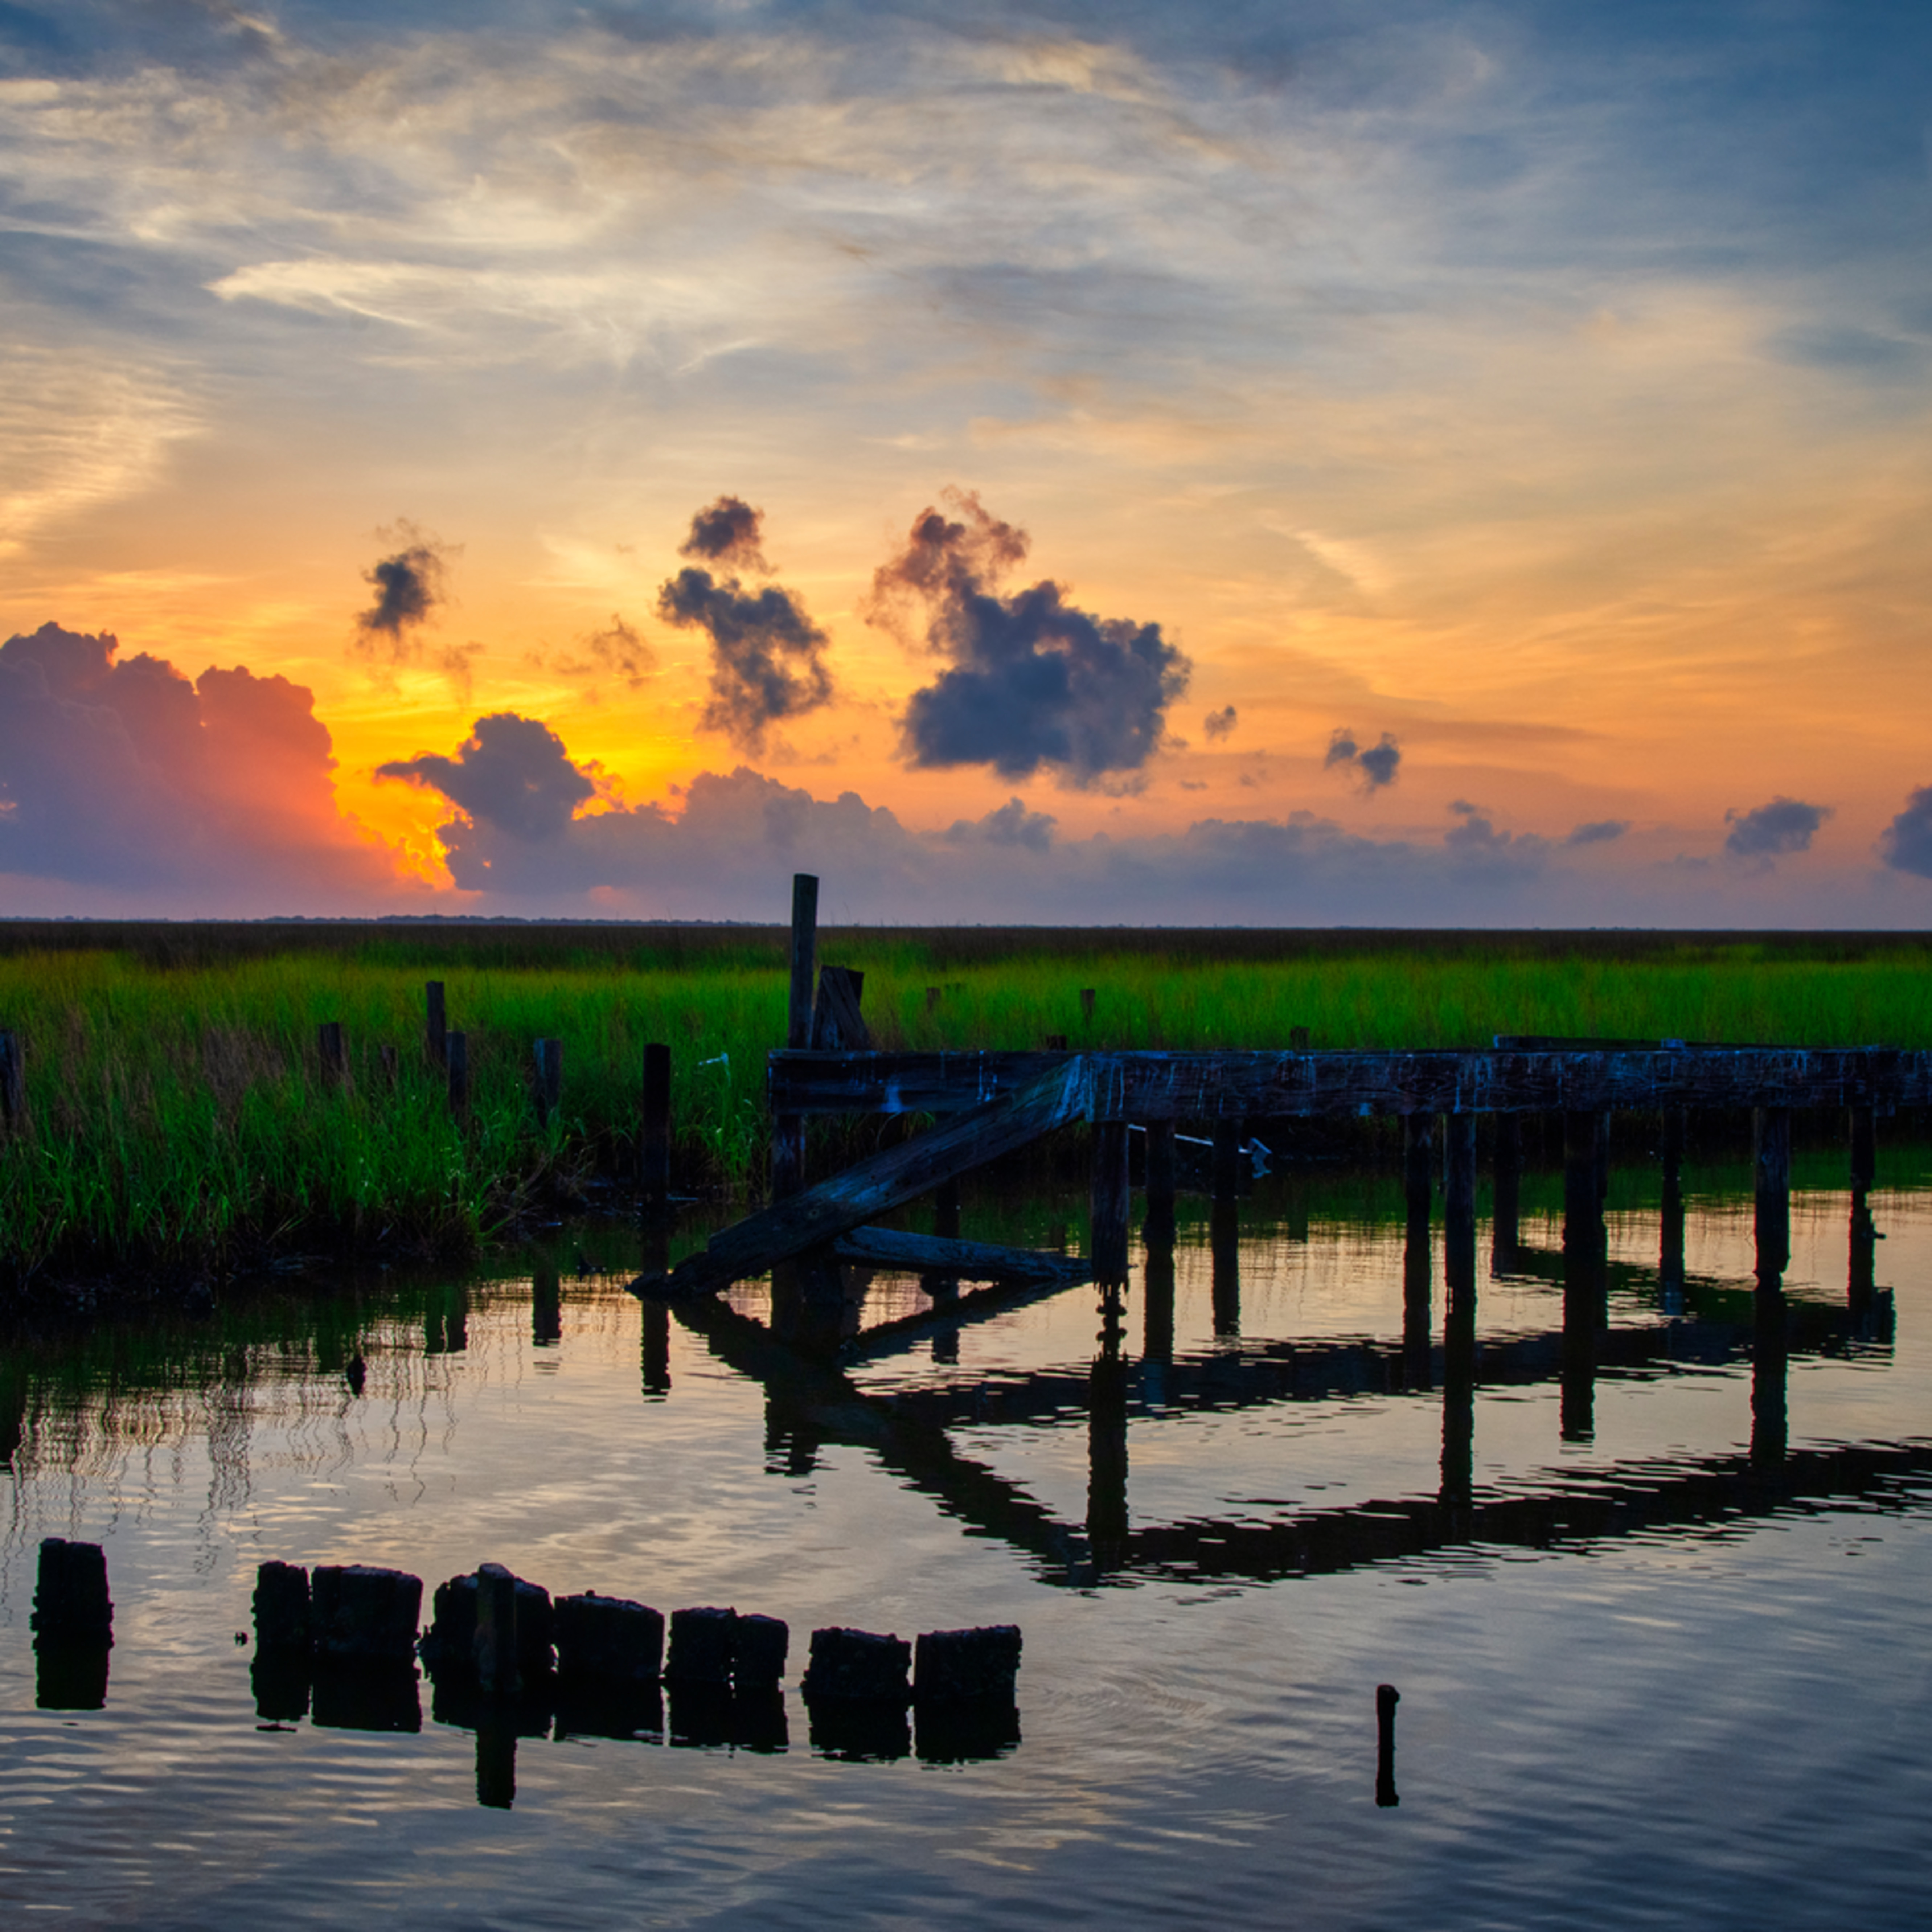 Andy crawford photography pointe aux chenes sunrise 1 dwi92k